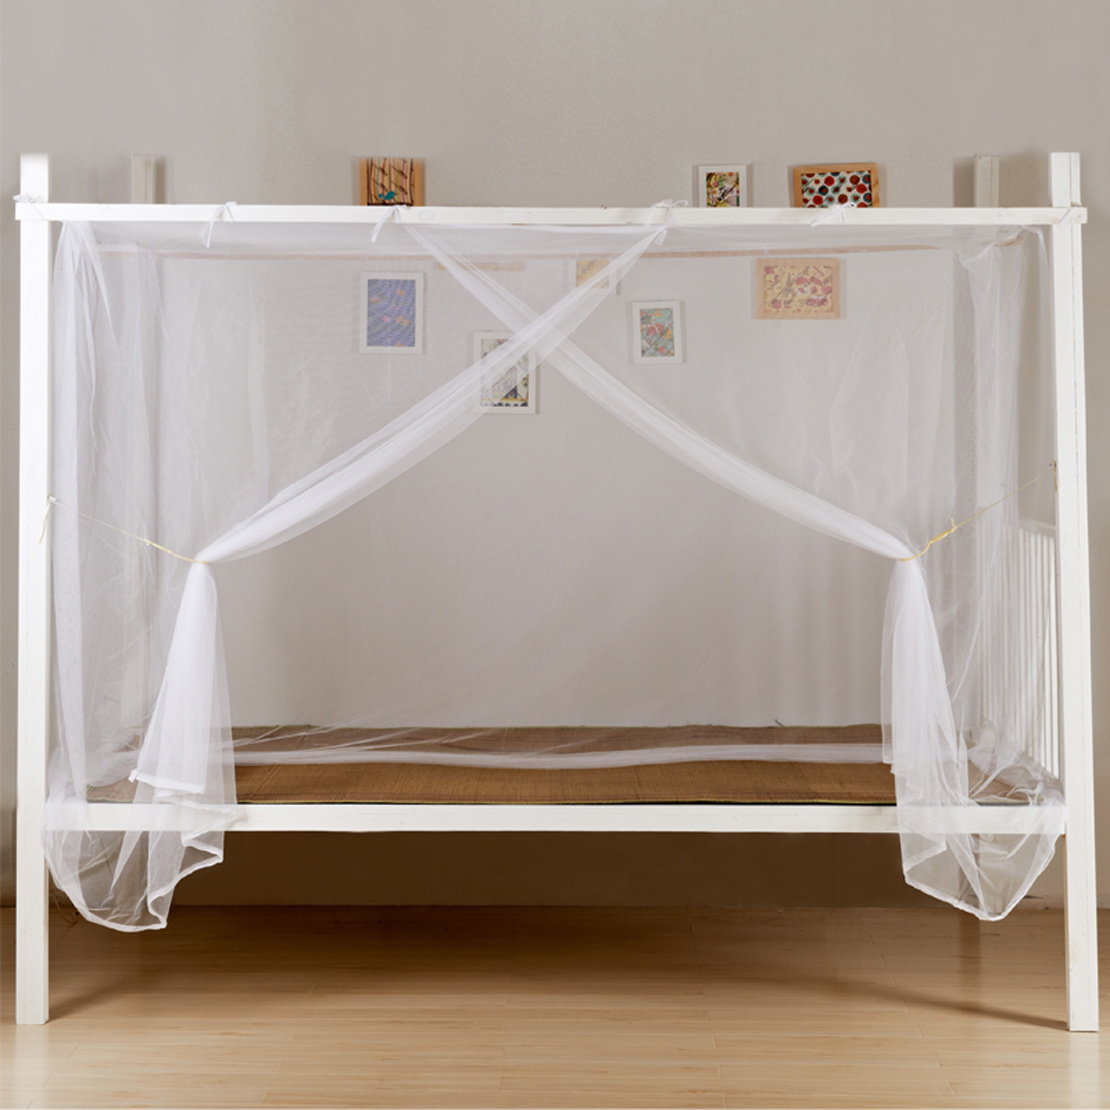 White Four Corner Post Bed Canopy Frame Mosquito Net Twin Full Queen King Size Ebay